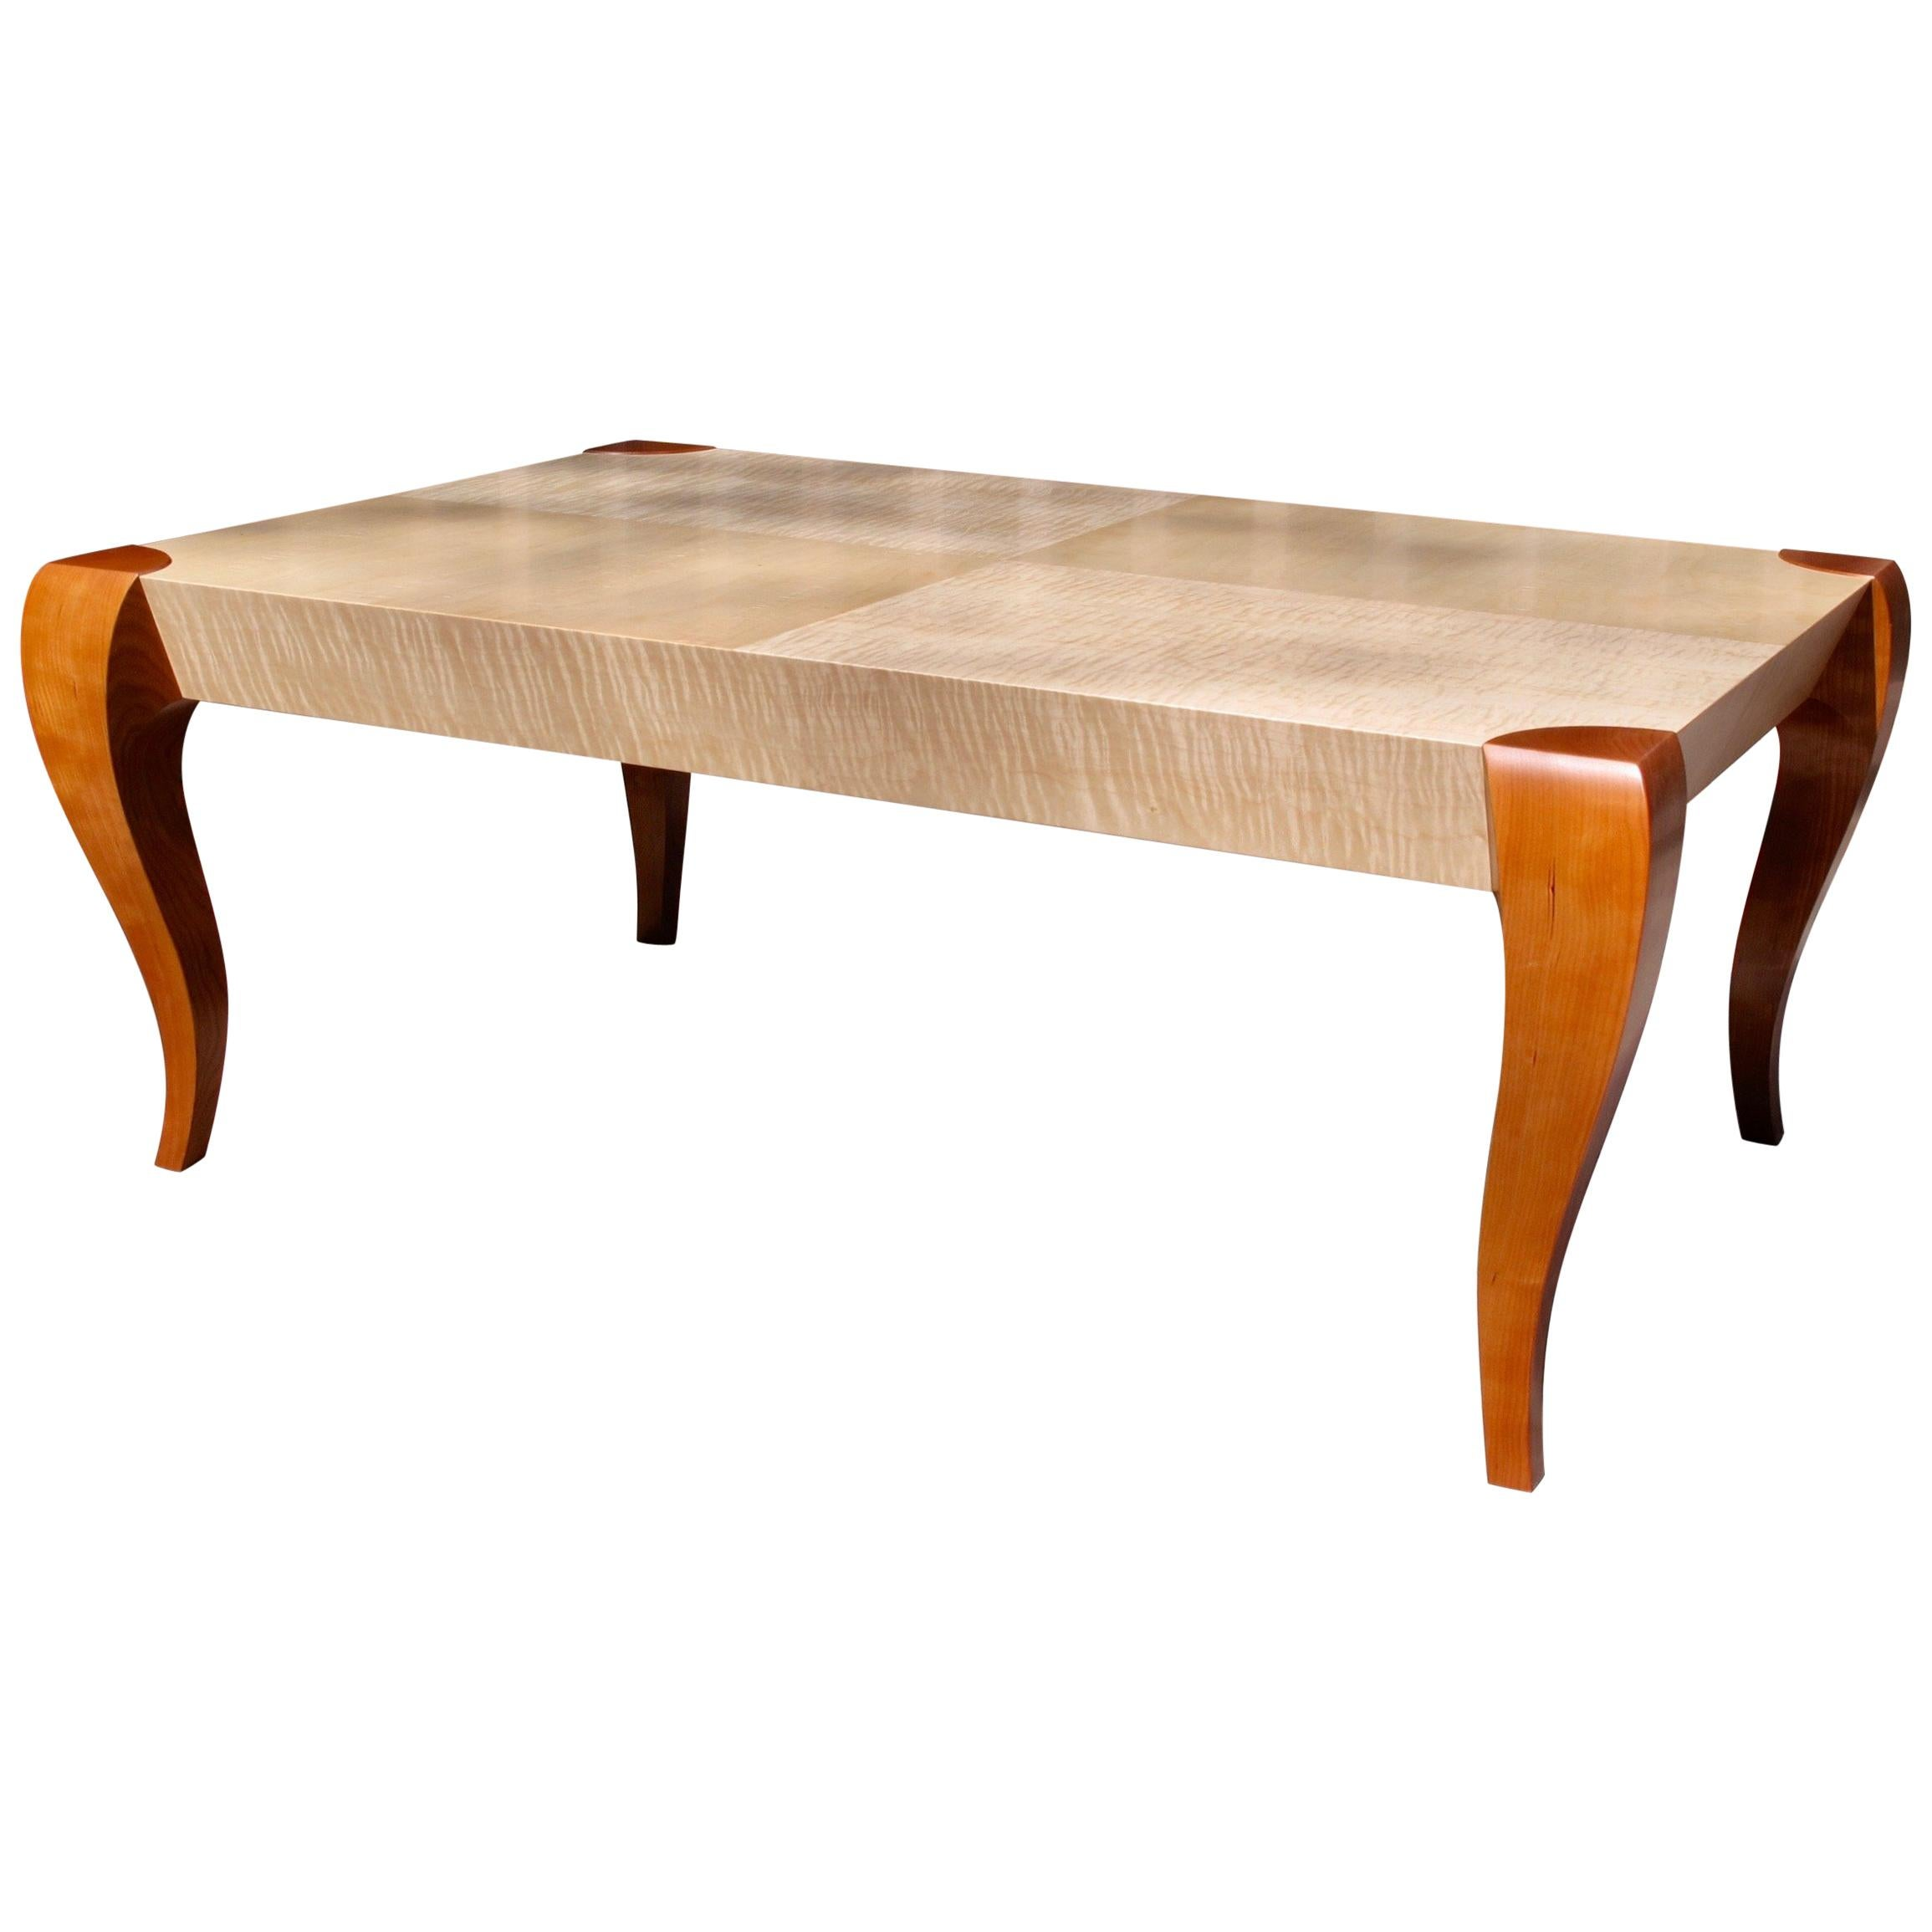 Gazelle Coffee Table, Handcrafted Contemporary Coffee Table in Art Deco Style